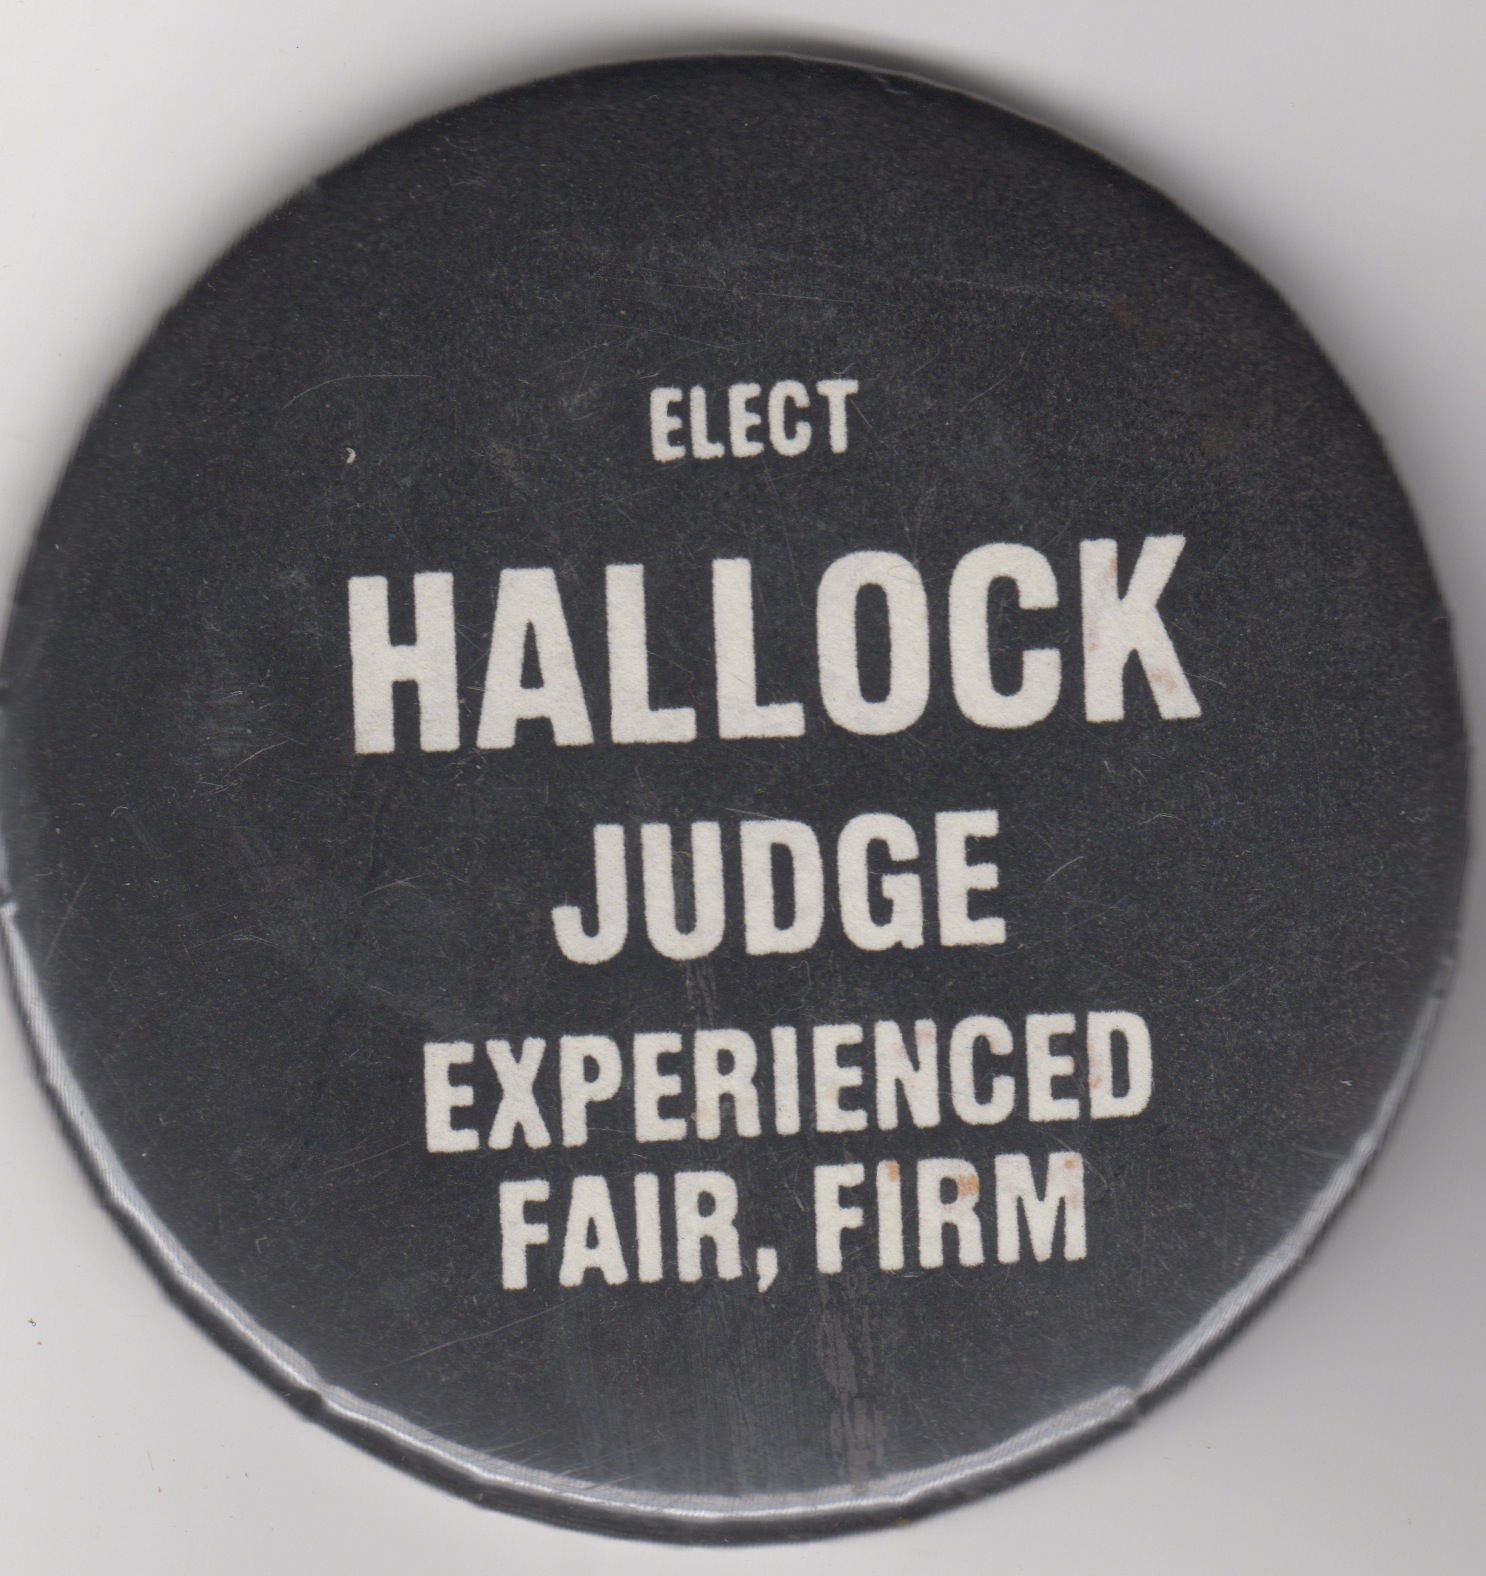 OHJudge-HALLOCK02.jpeg